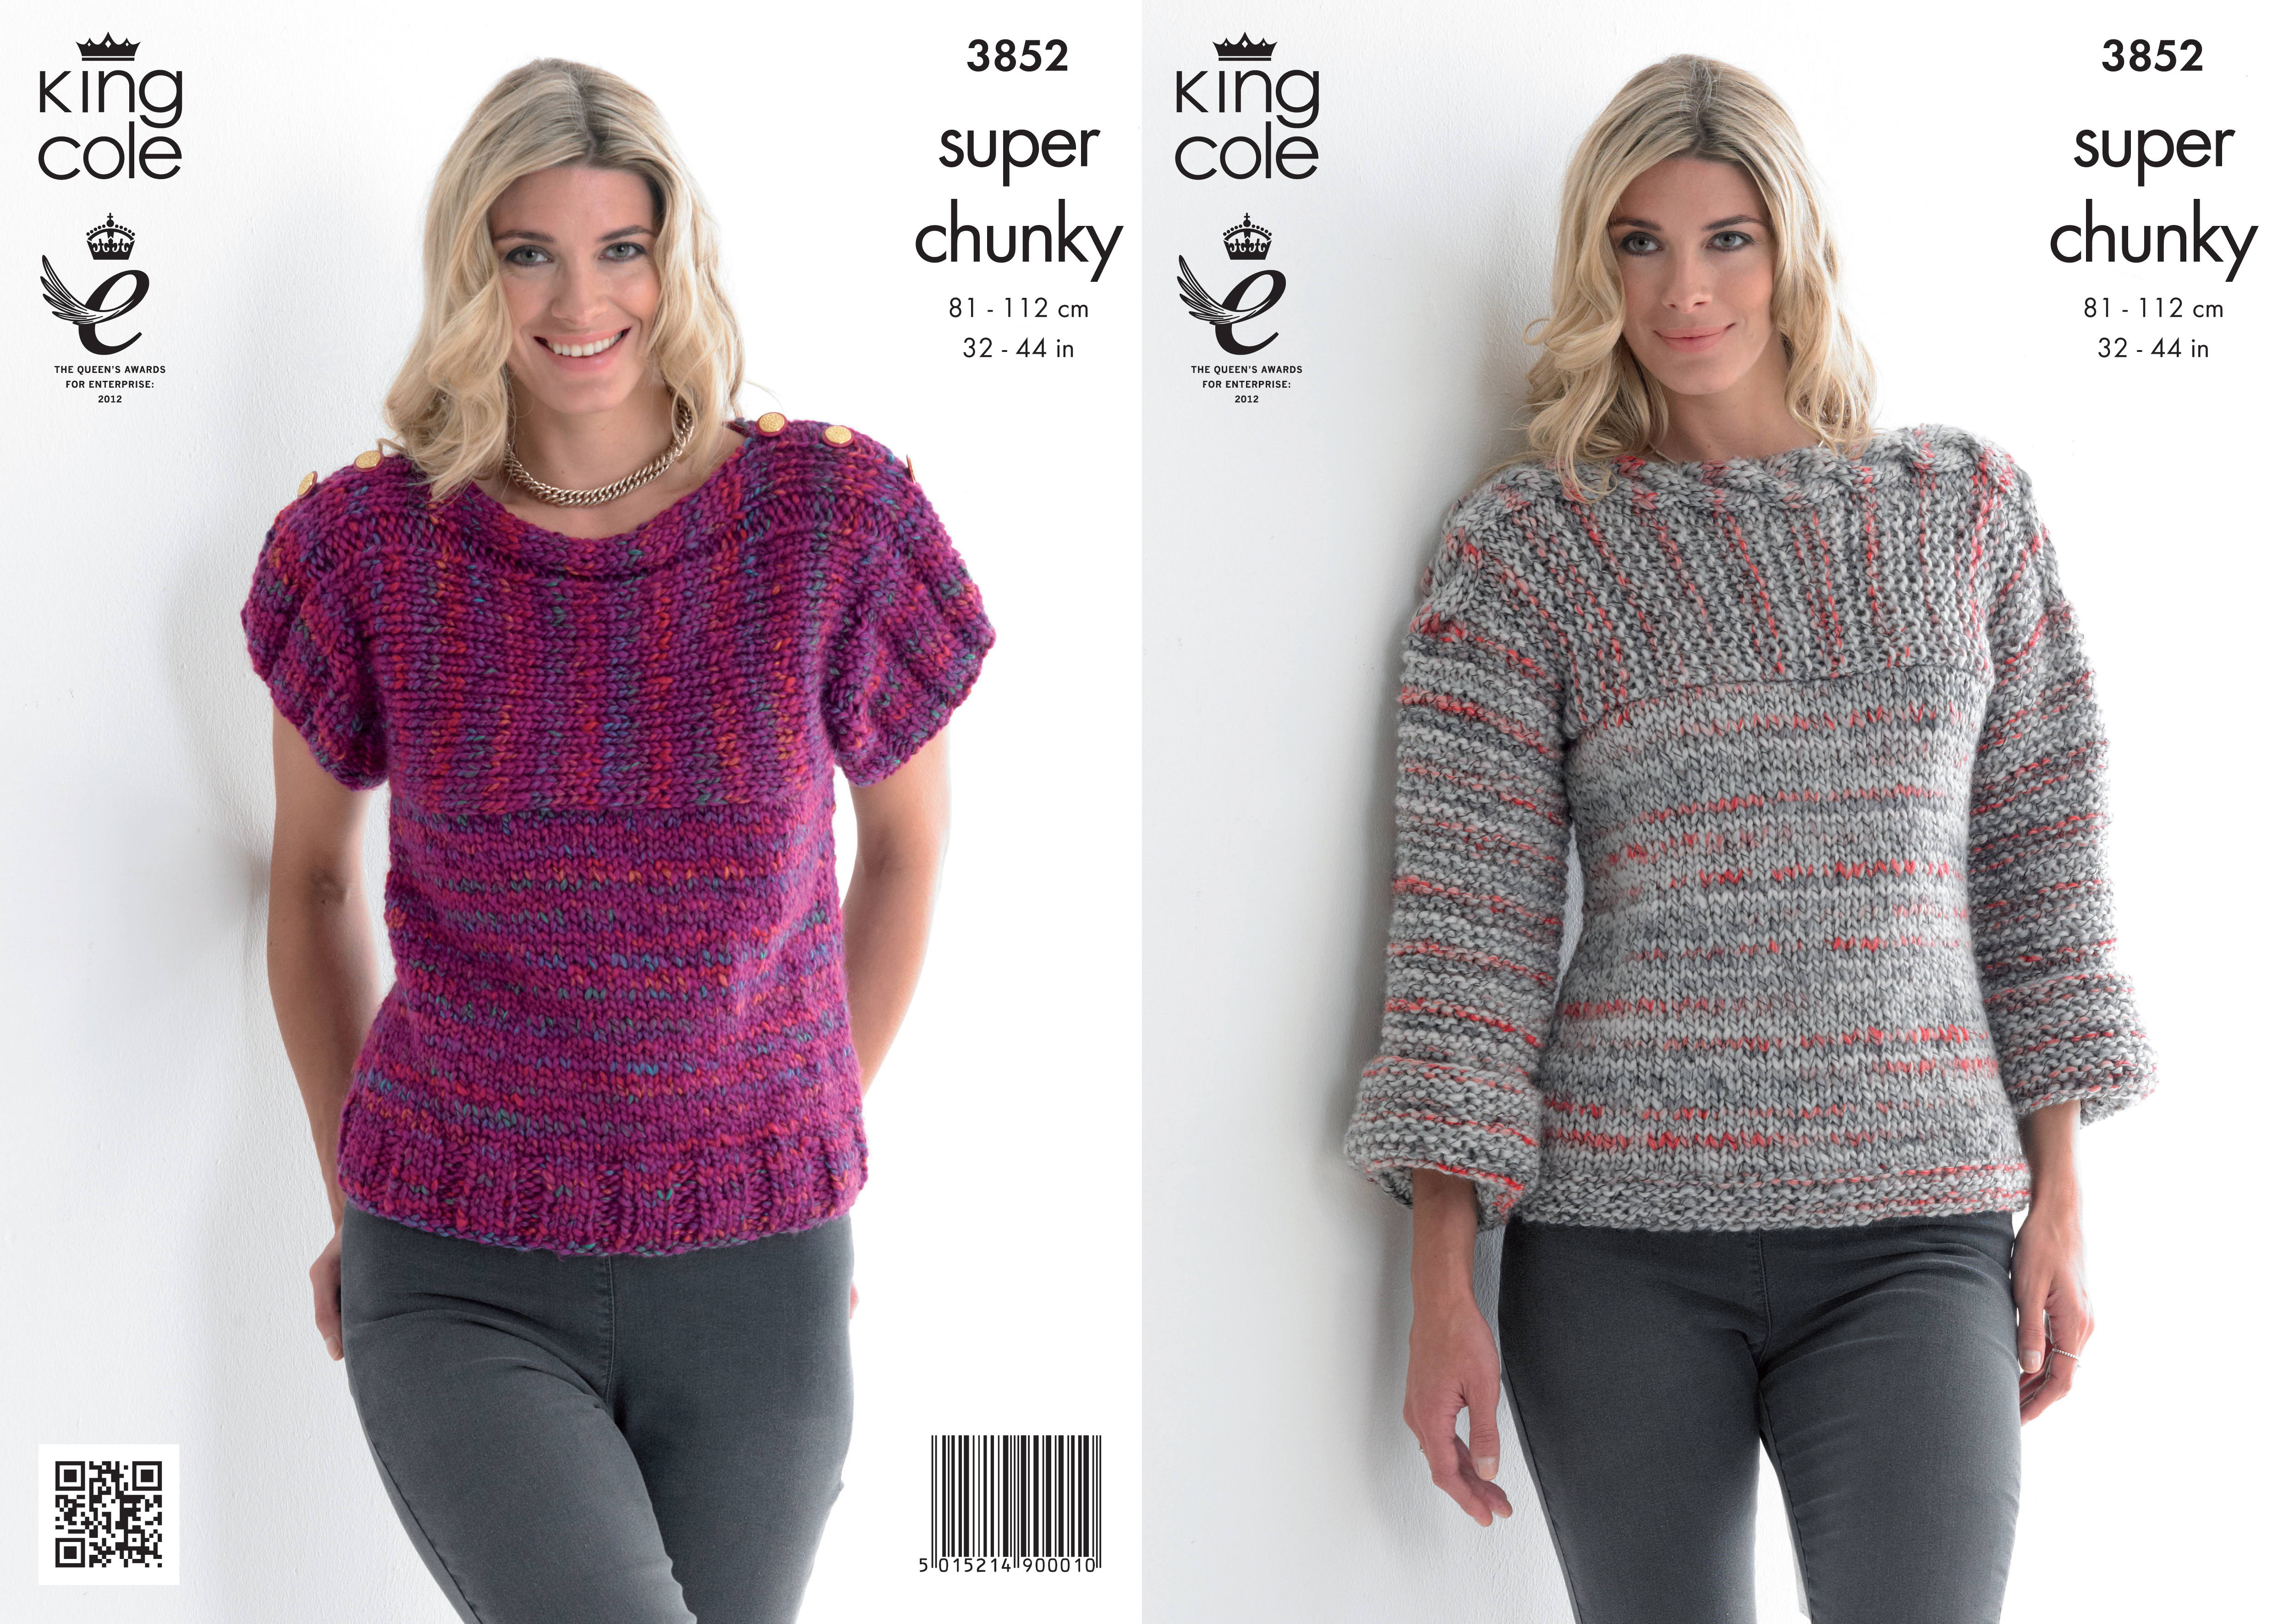 Knitting Patterns For Women Details About King Cole Ladies Gypsy Super Chunky Knitting Pattern Womens Sweater Top 3852